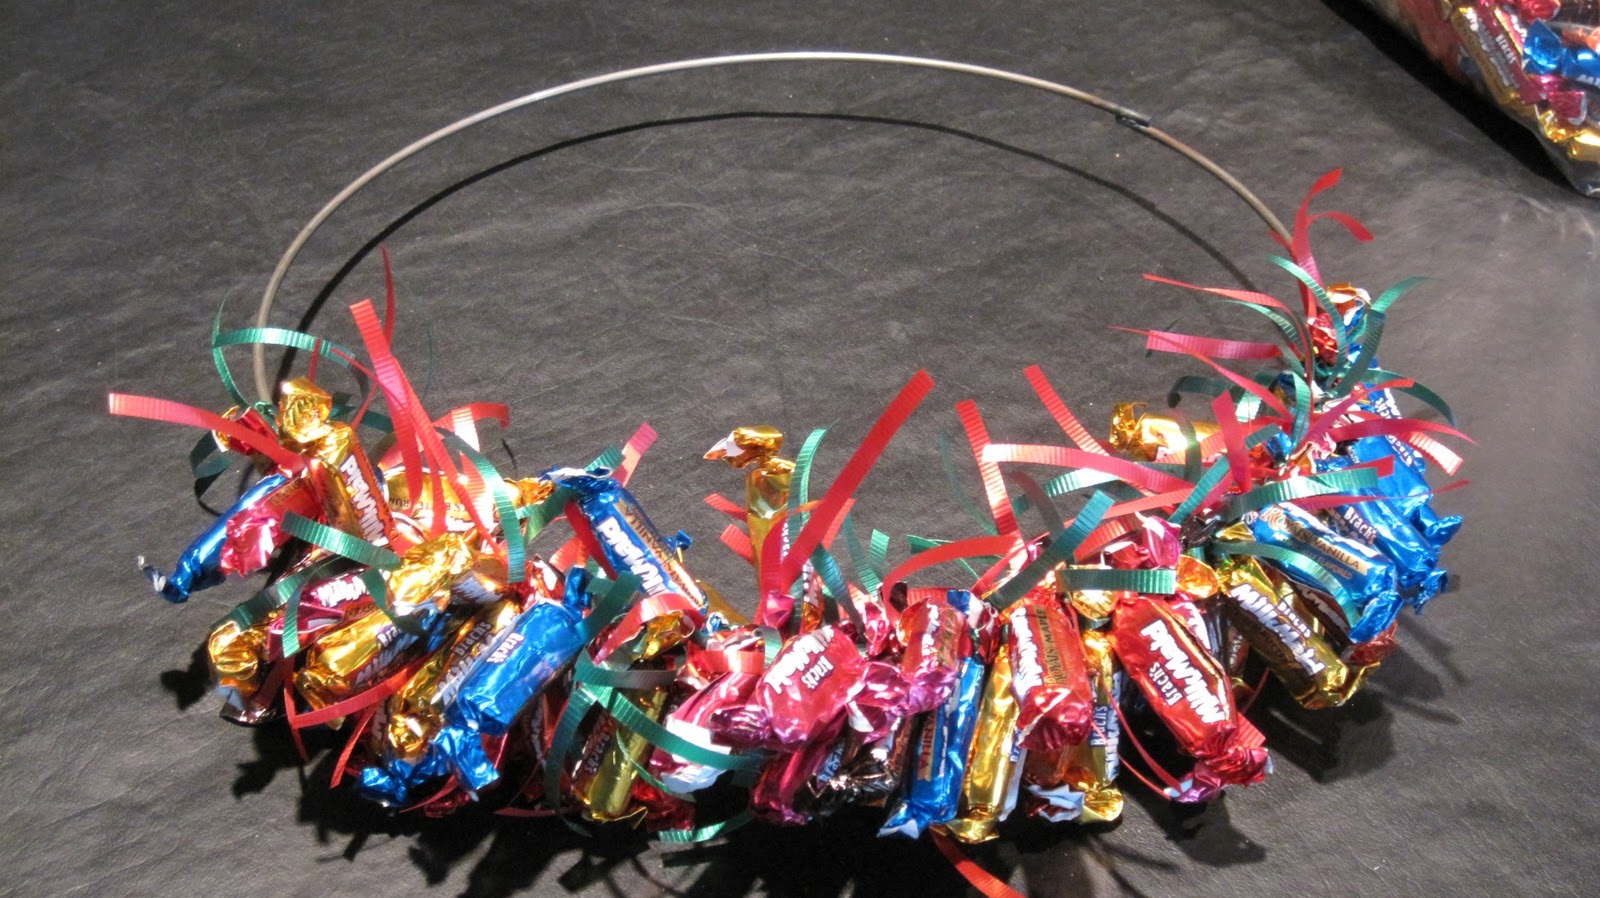 How to make a candy wreath at home with vicki bensinger Making wreaths